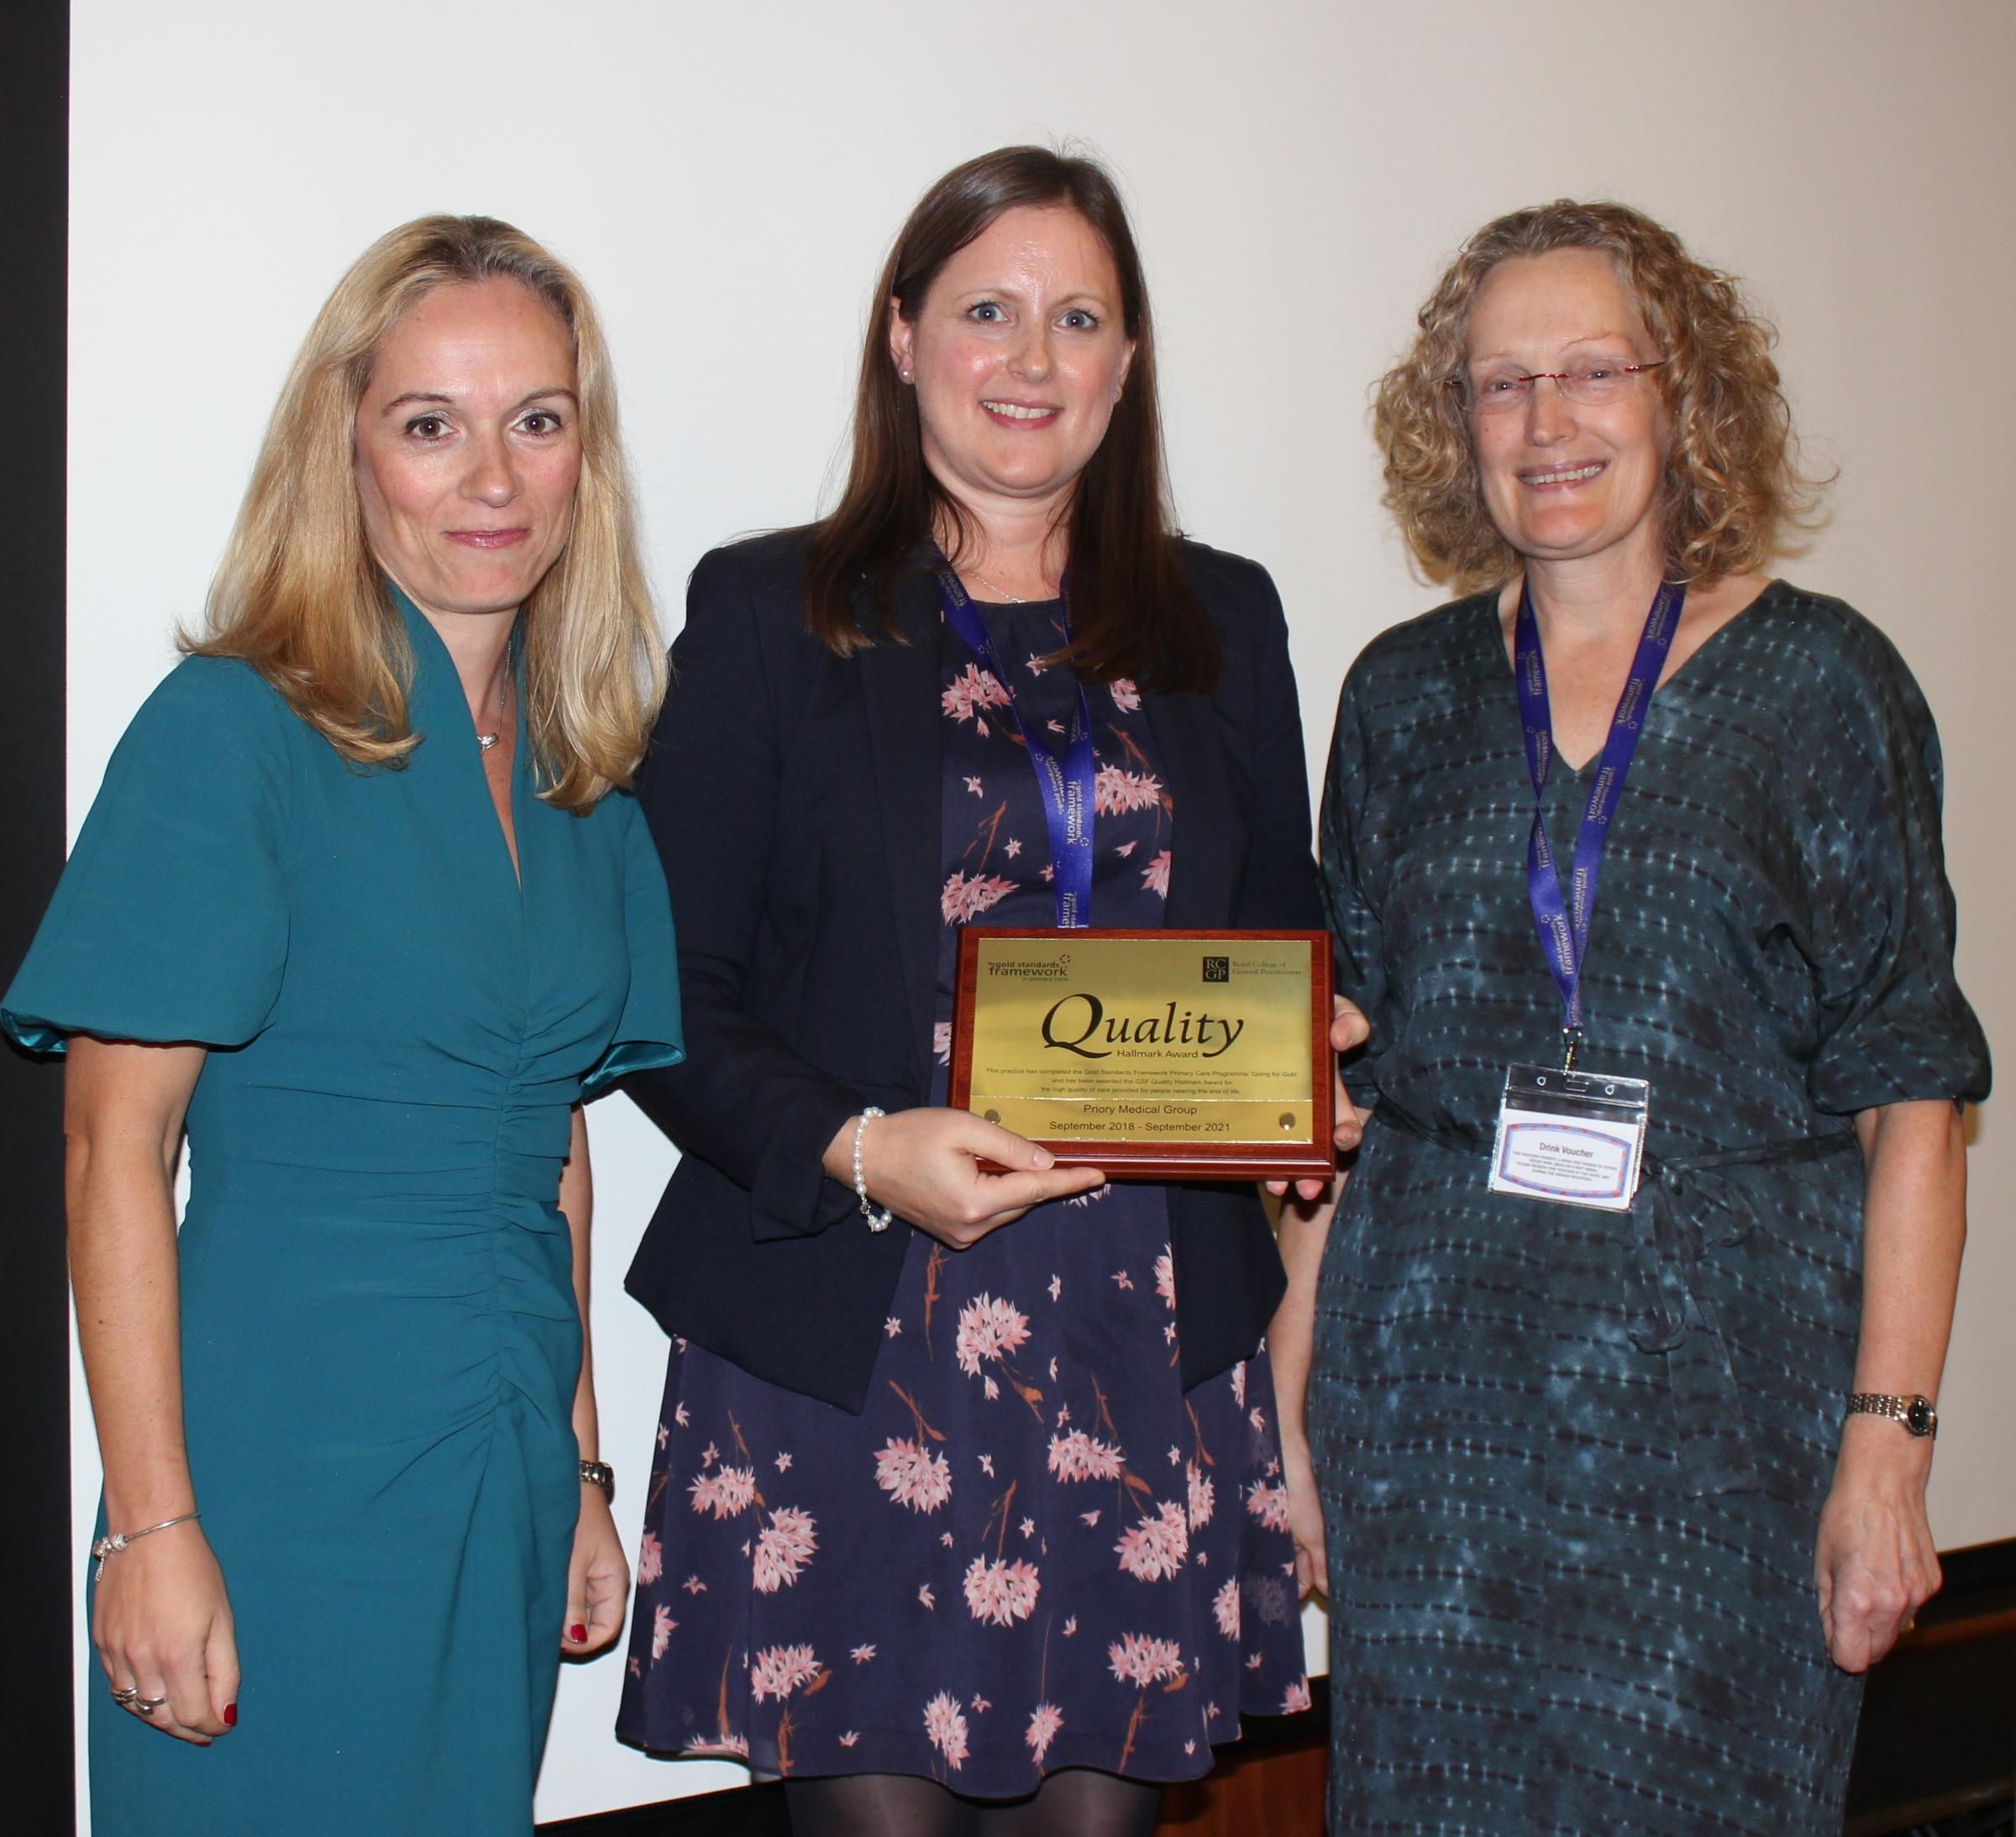 EXEMPLARY: Dr Victoria Tzortziou Brown, Integrated Care lead at the Royal College of General Practitioners, Dr Victoria Middleton and Dr Lesley Godfrey both of the Priory Medical Group